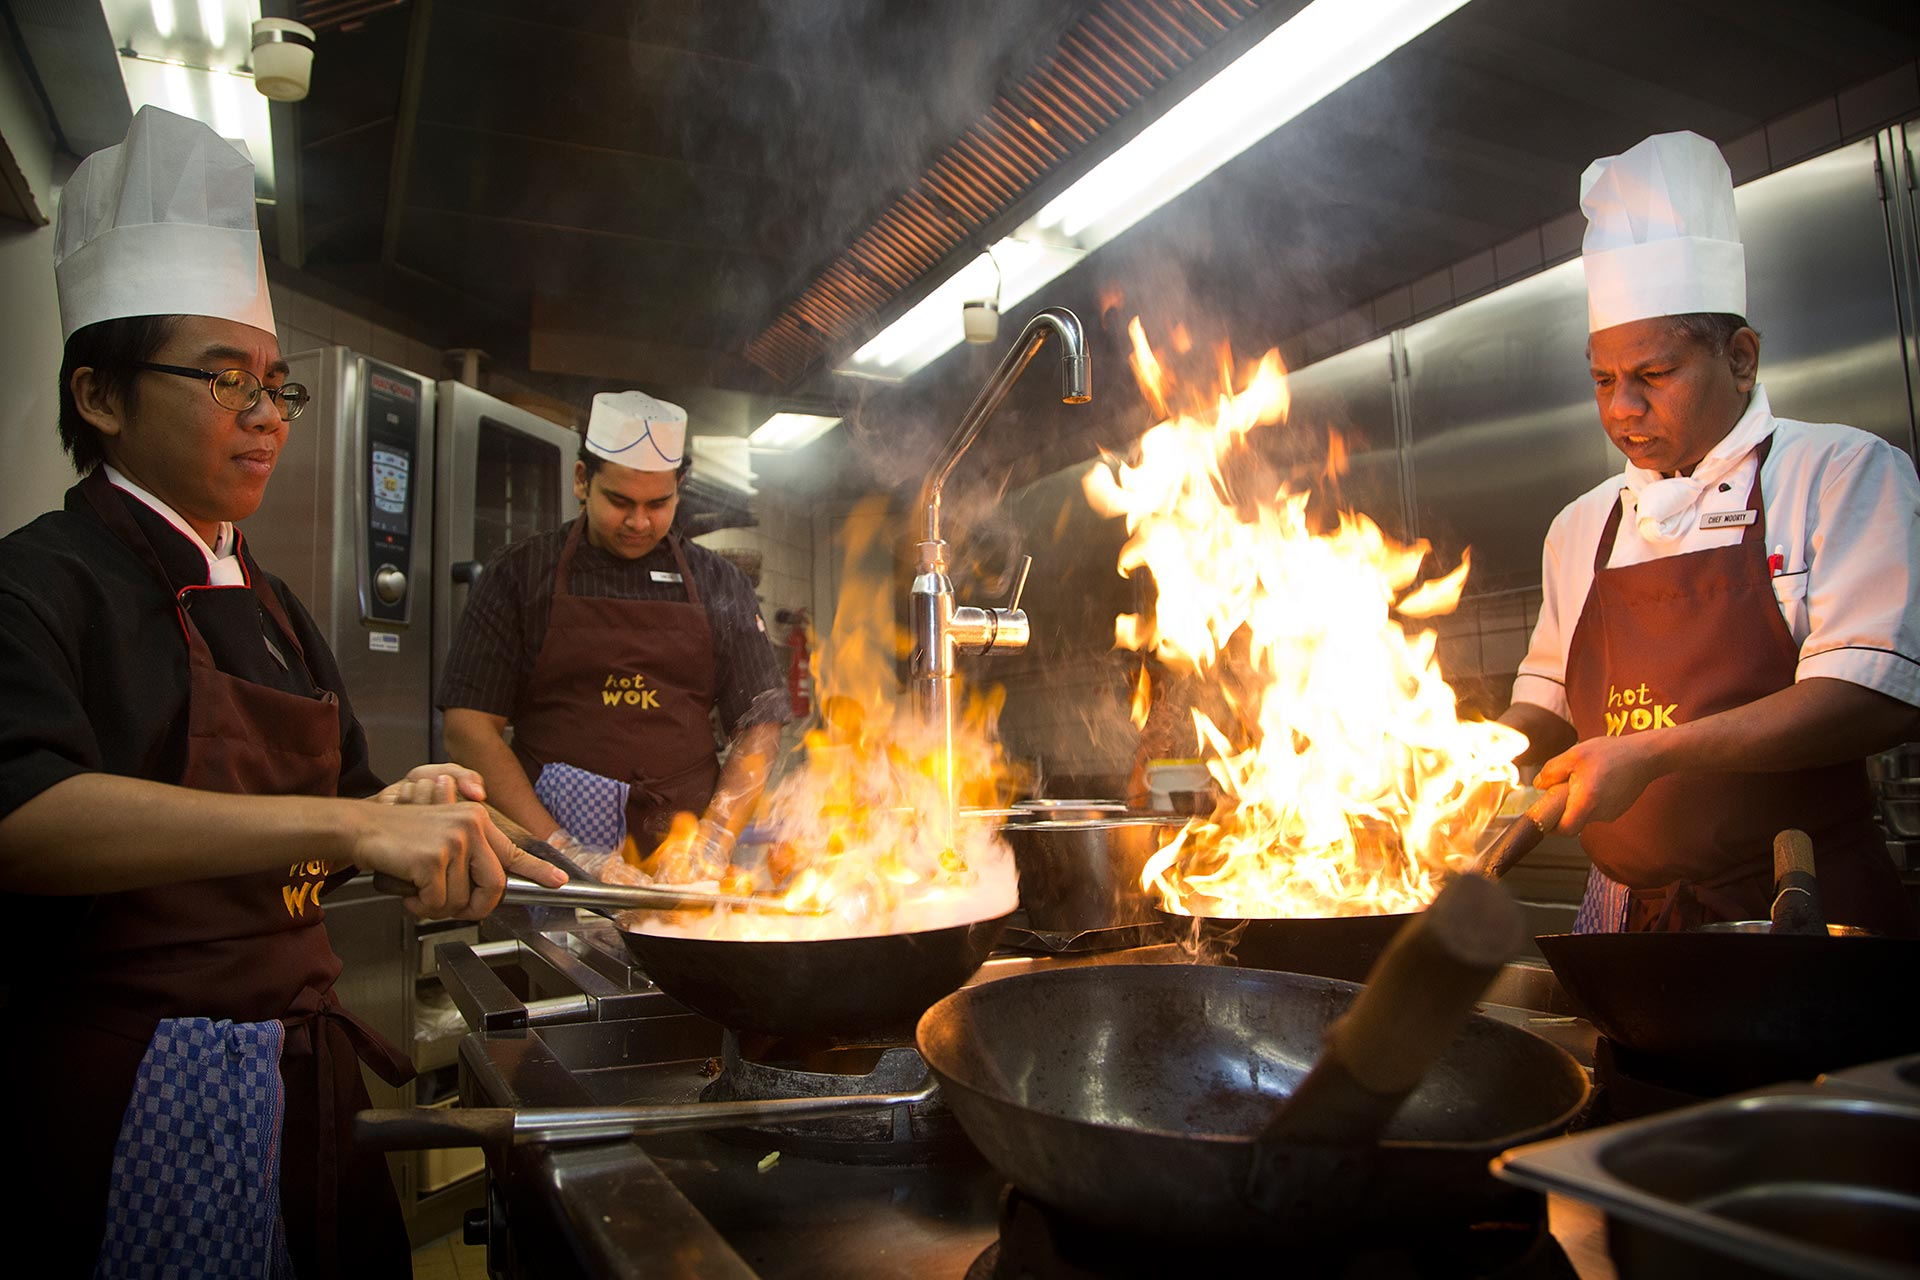 HOT WOK Restaurant - Taste the difference